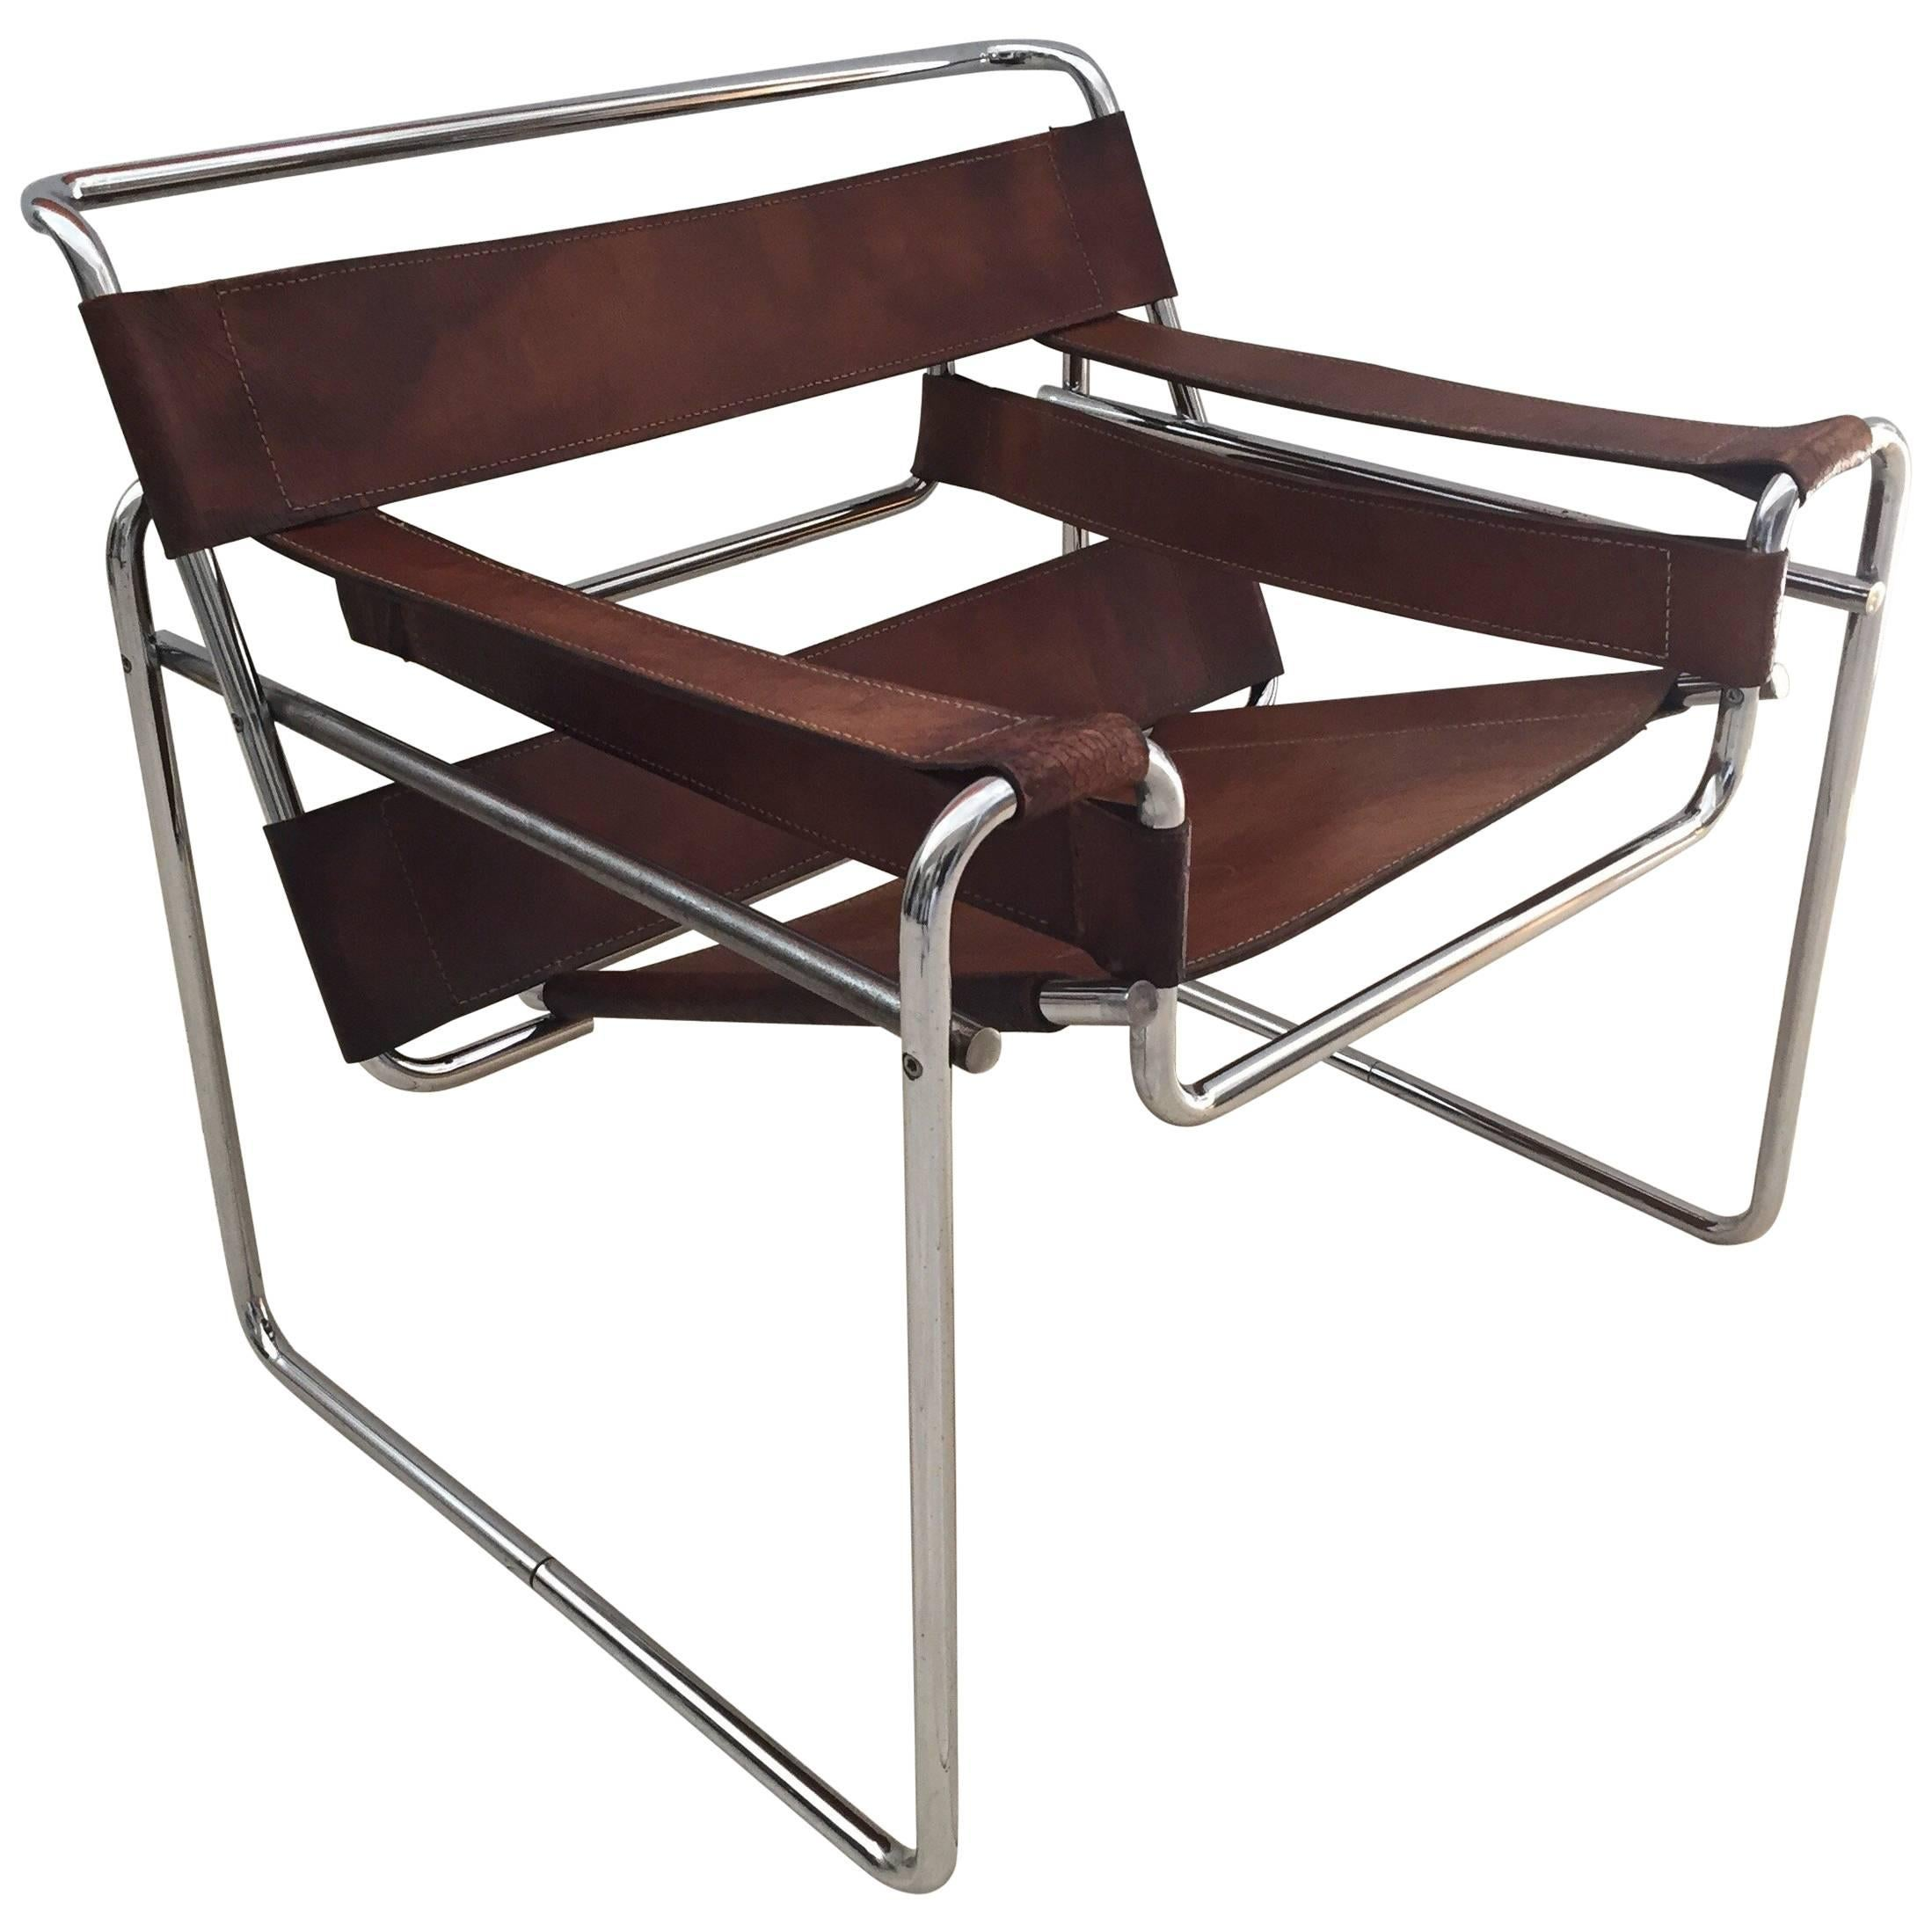 Vintage Early Original Marcel Breuer Wassily Chair For Knoll In Brown  Leather For Sale